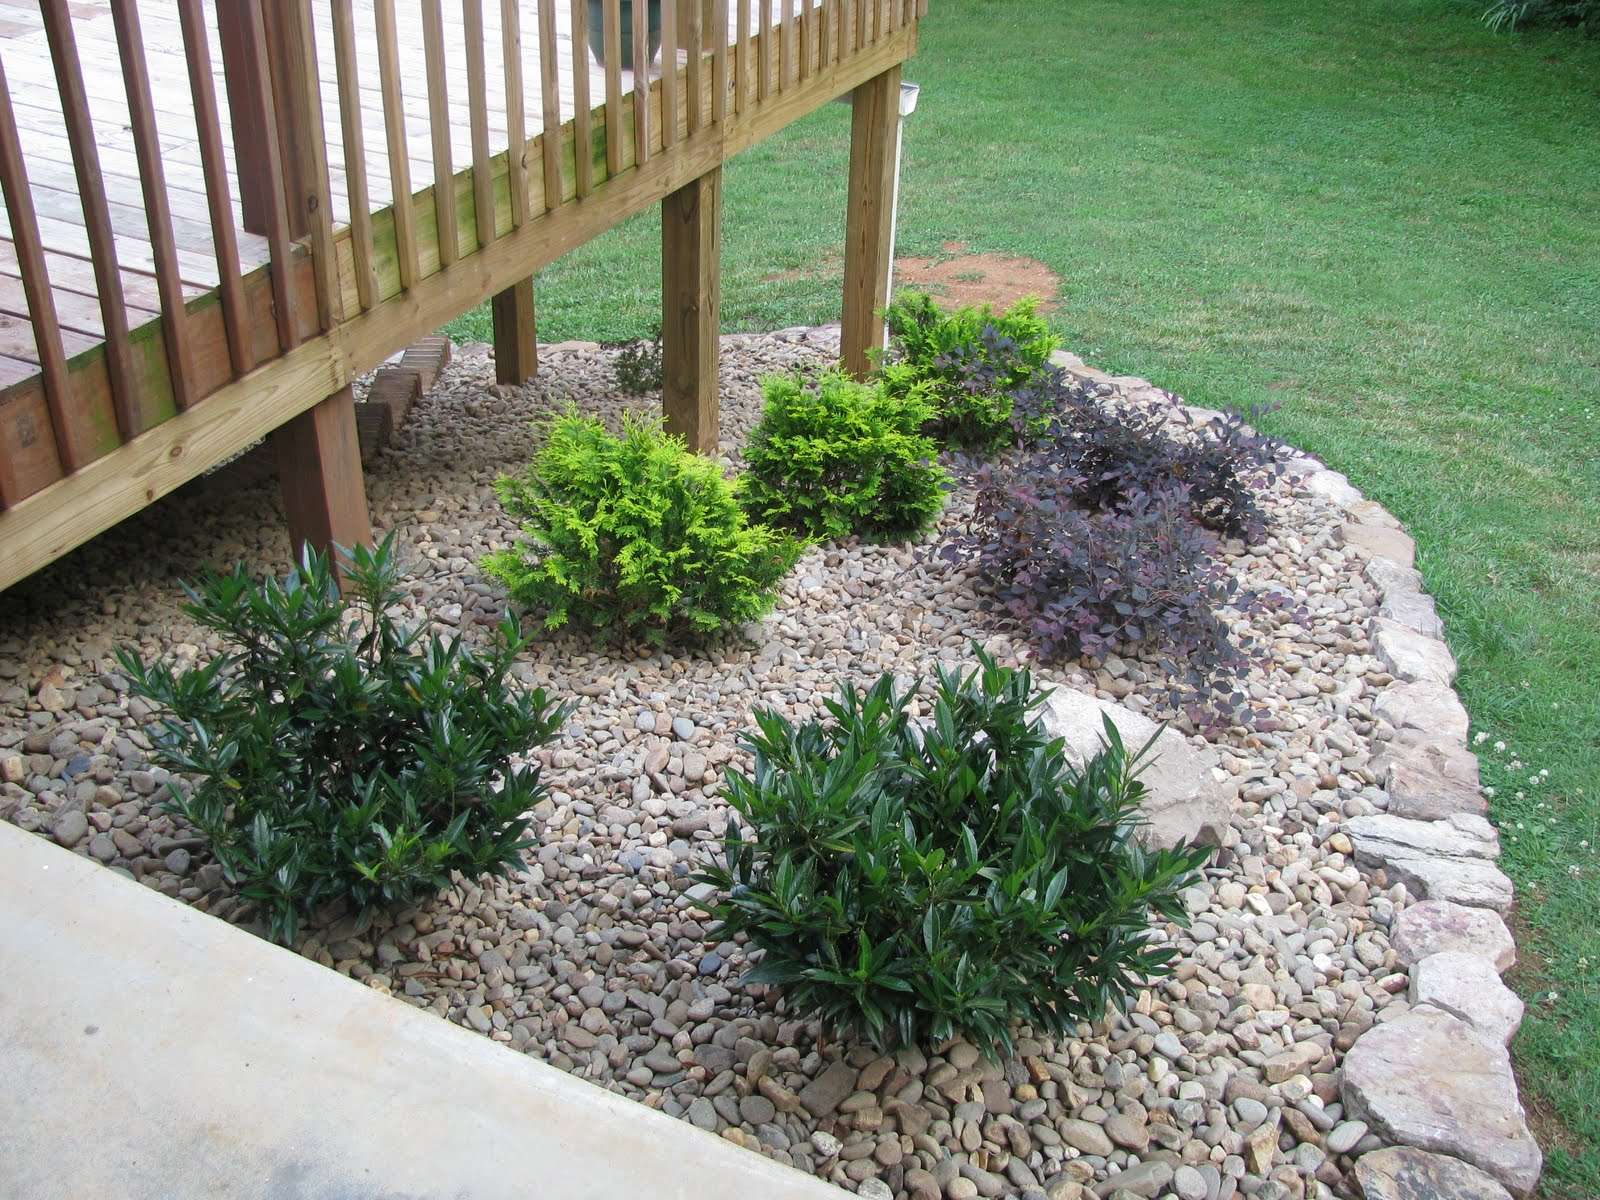 Landscaping with rocks around house design and ideas for Landscaping around house